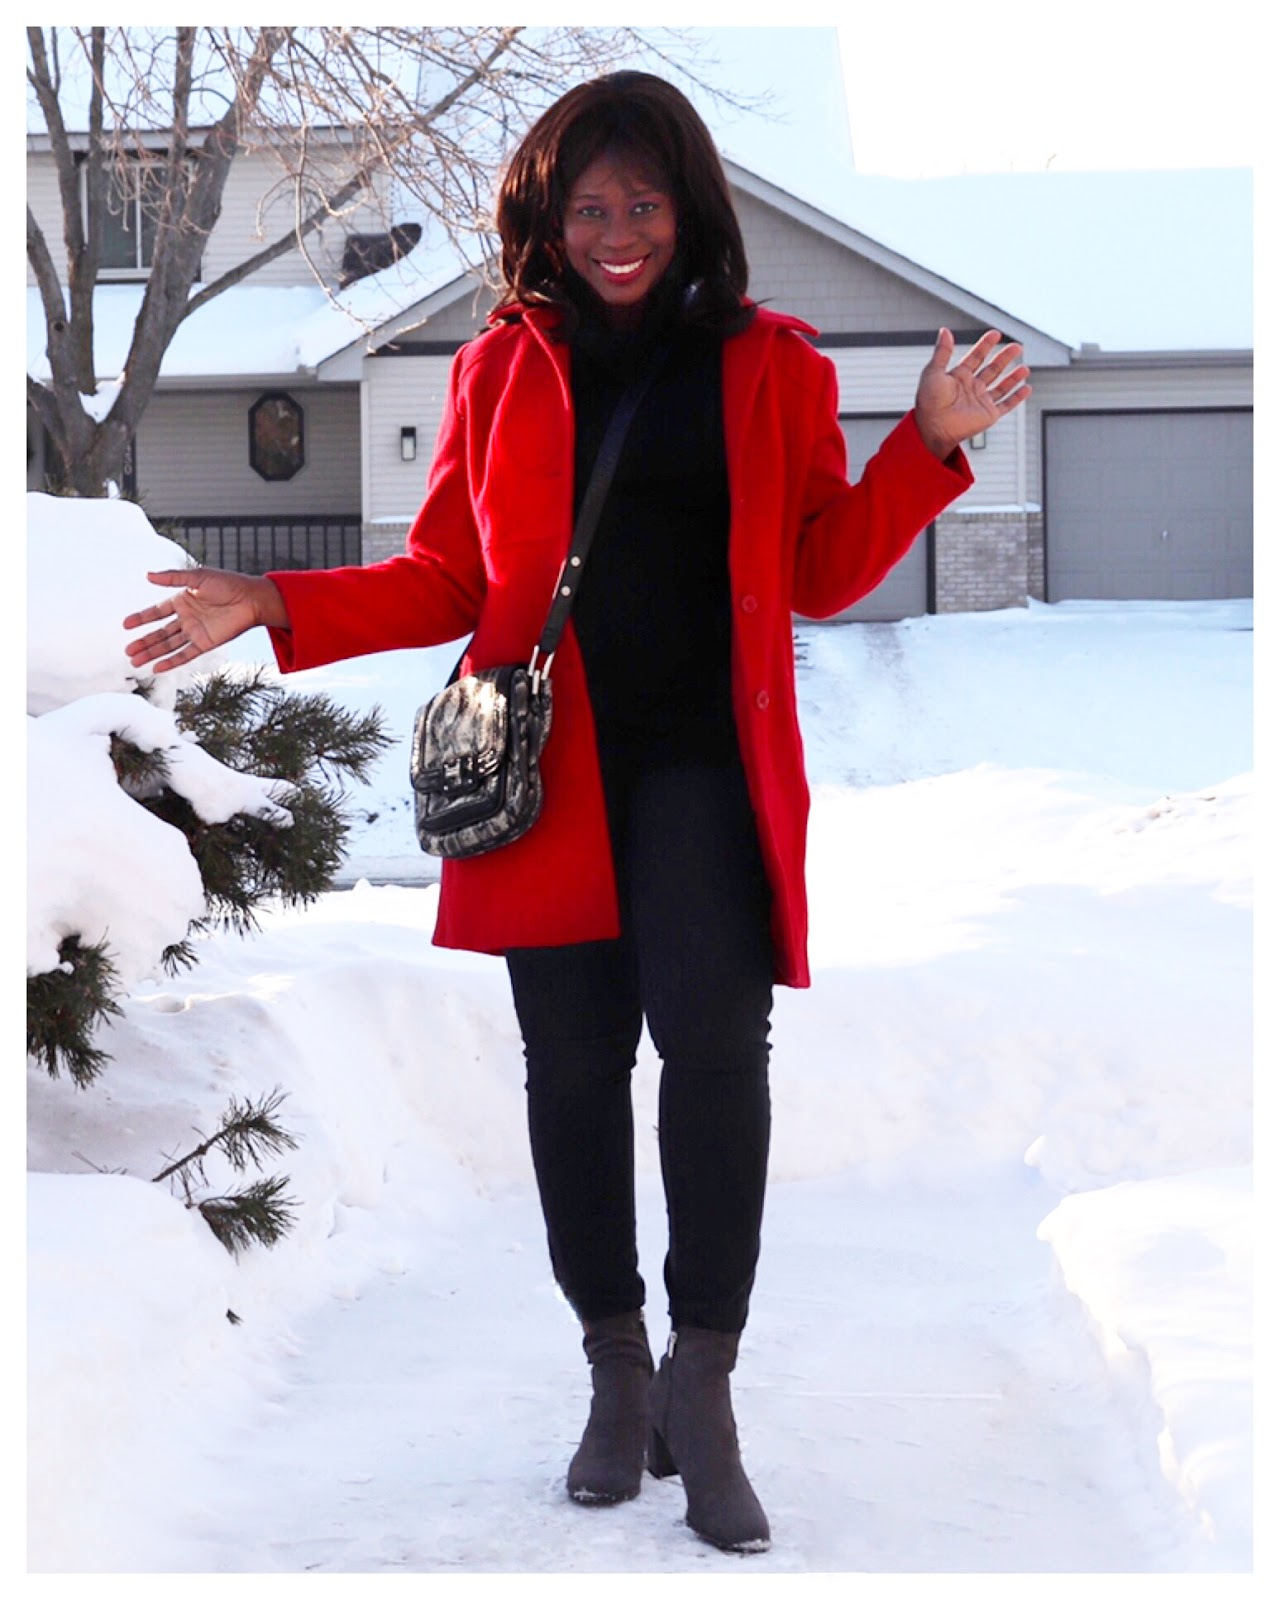 Beauty's Fashion Zone: Red Wool Coat + All Black Outfit